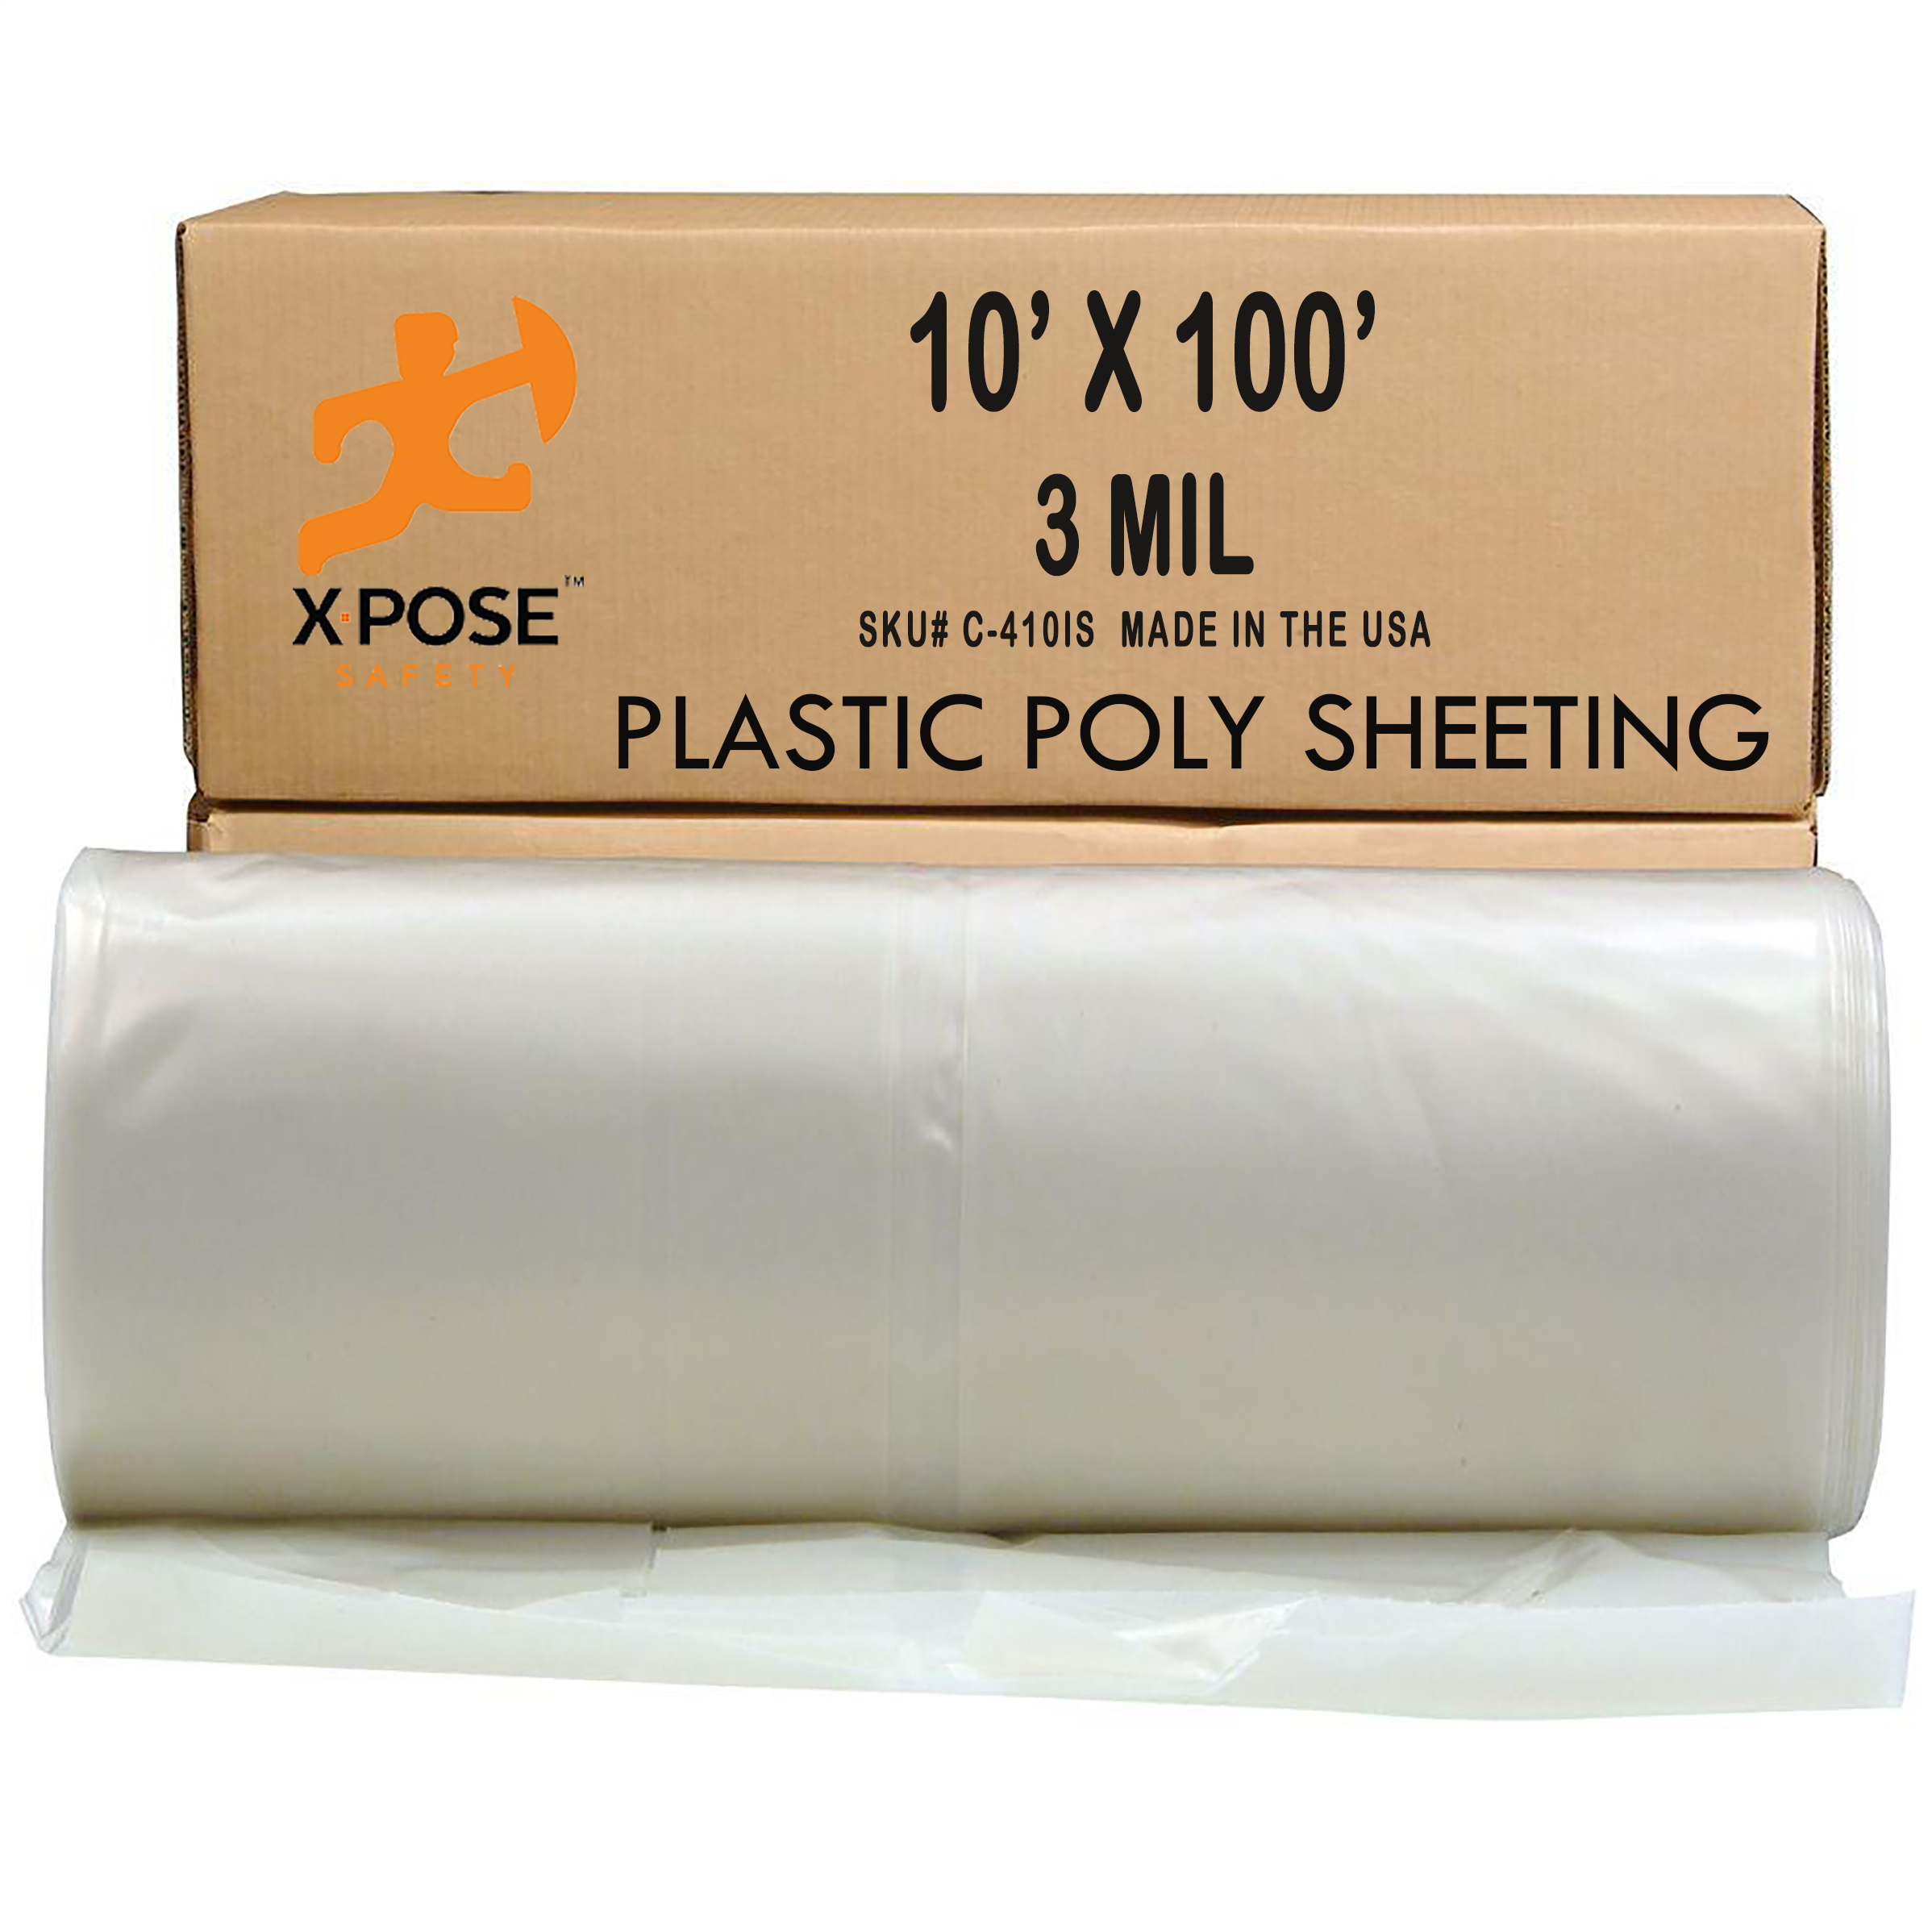 <p>Clear Poly Sheeting - 10 x 100 Feet - Heavy Duty, 3 Mil Thick Plastic Tarp - Waterproof Vapor and Dust Protective Equipment Cover - Agricultural, Construction and Industrial Use - by Xpose Safety<br></p> C-410IS